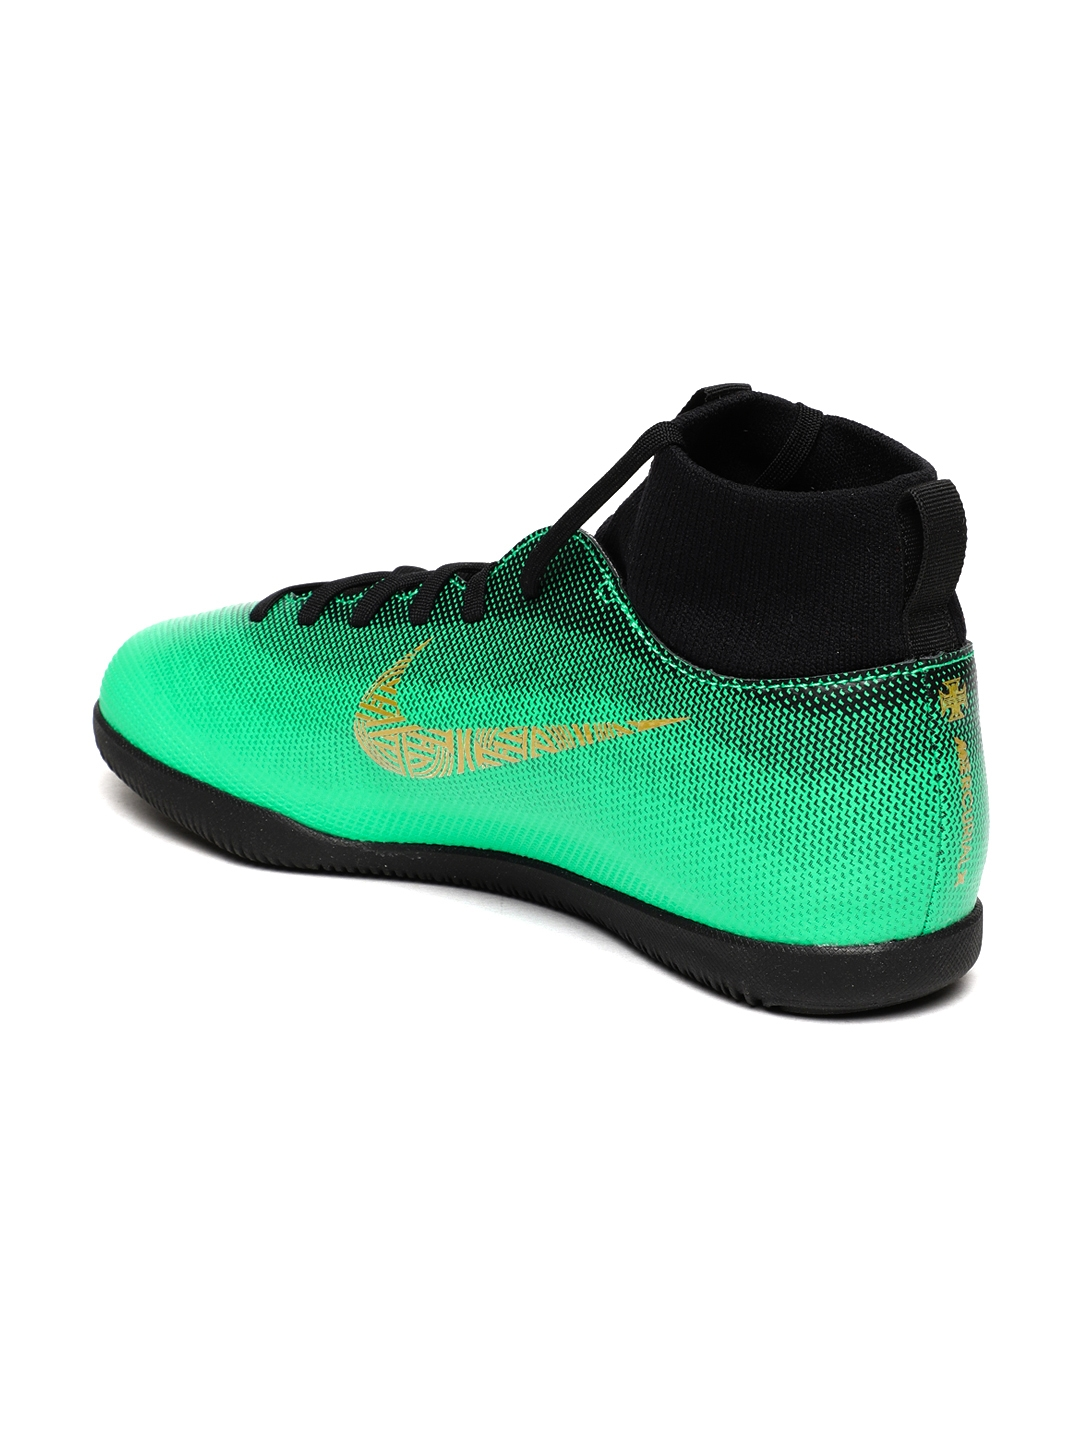 official photos 3fccf 5d0e8 Nike Kids Green SUPERFLY 6 CLUB CR7 IC Football Shoes